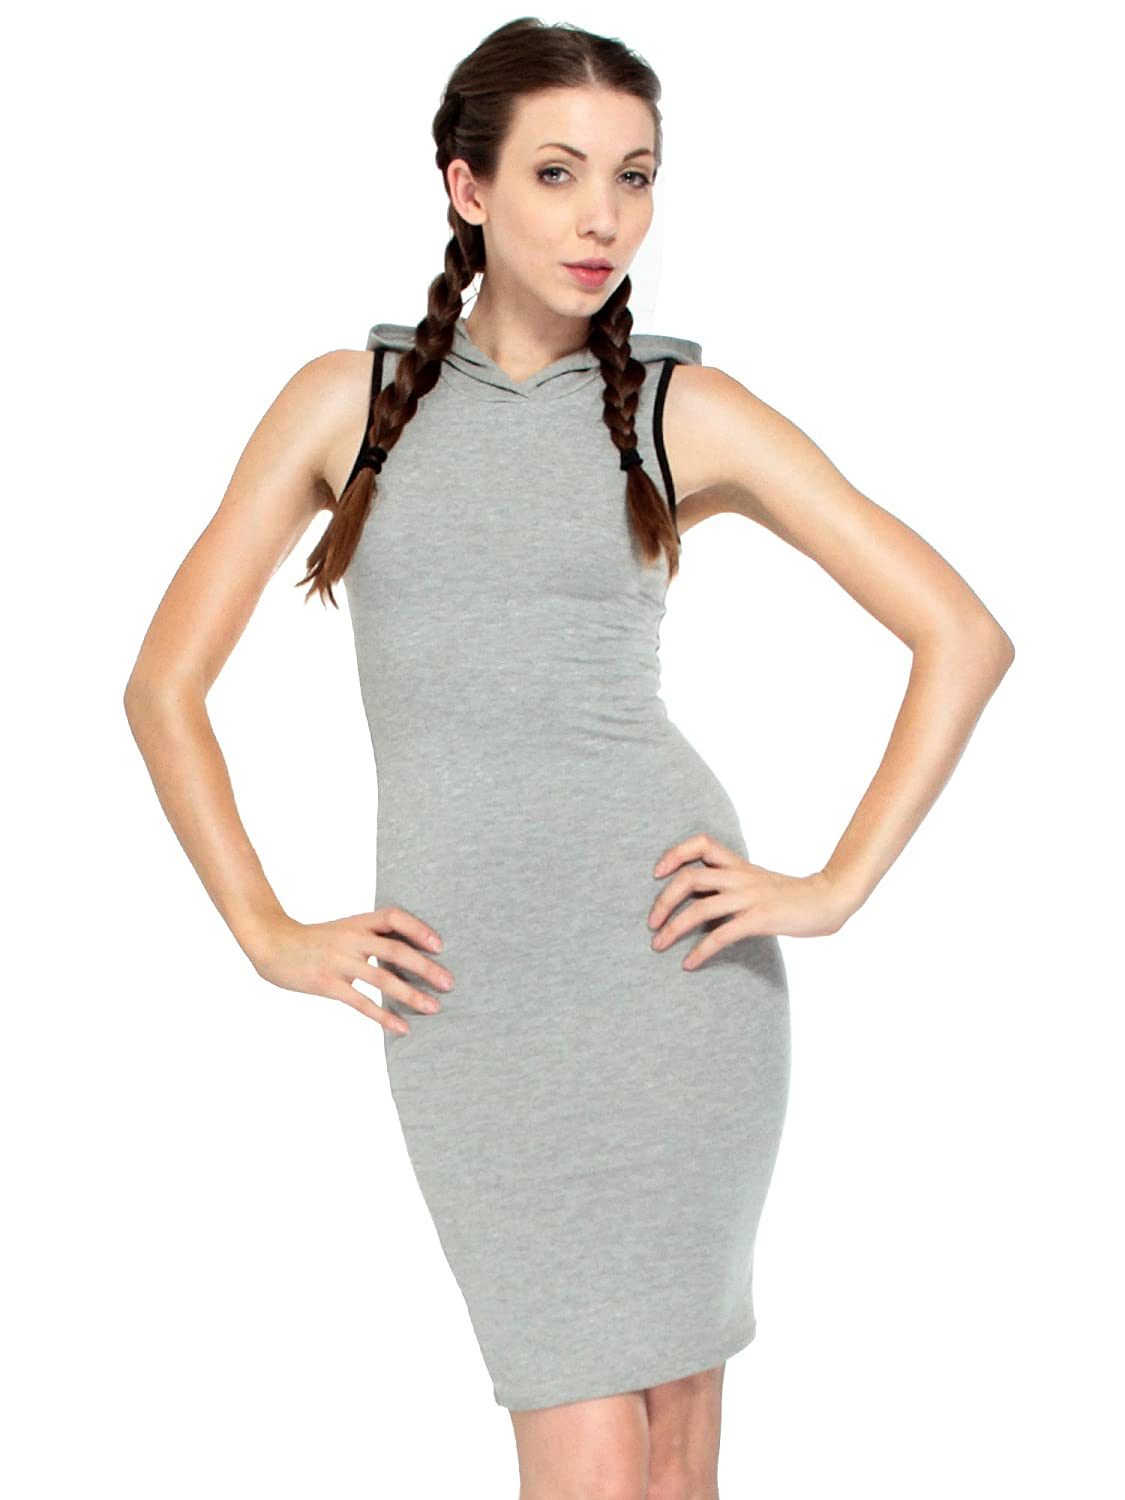 Simplicity Sexy Sleeveless Athletic Hoodie Tank Dress with Stripe